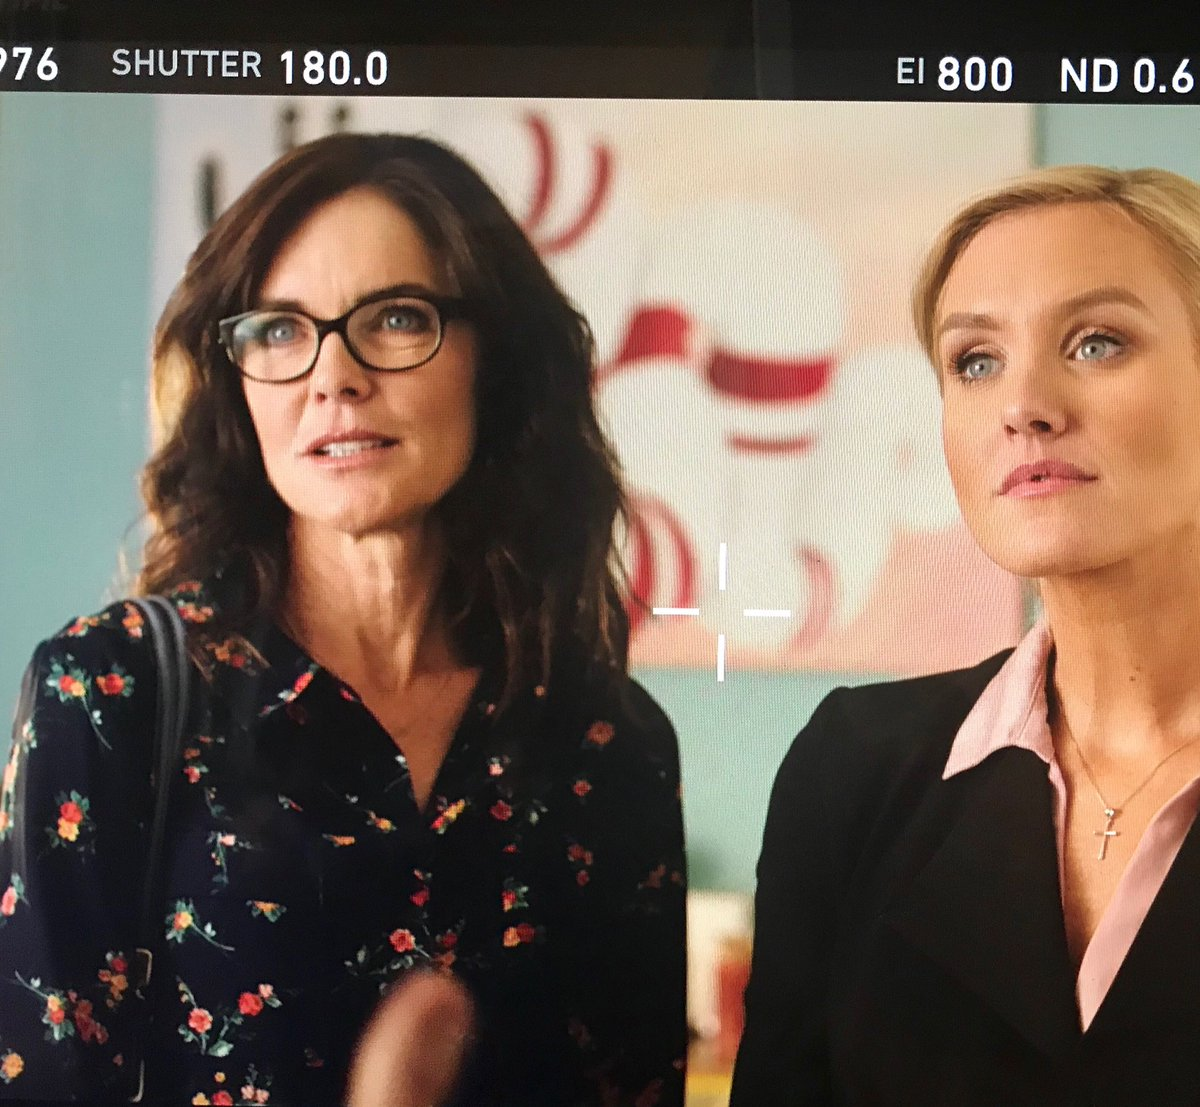 Susan Walters On Twitter Day 1 Scene 1 With The Beautiful Nickywhelan On Donotbedeceived For Ninthhousefilms Back Working For Jakehelgren Autumnfederici And I Couldn T Be Happier Https T Co Xdjy6cwuzk Susan walters (born september 28, 1963) is an american actress and former model who portrayed carol lockwood on the vampire diaries. susan walters on twitter day 1 scene